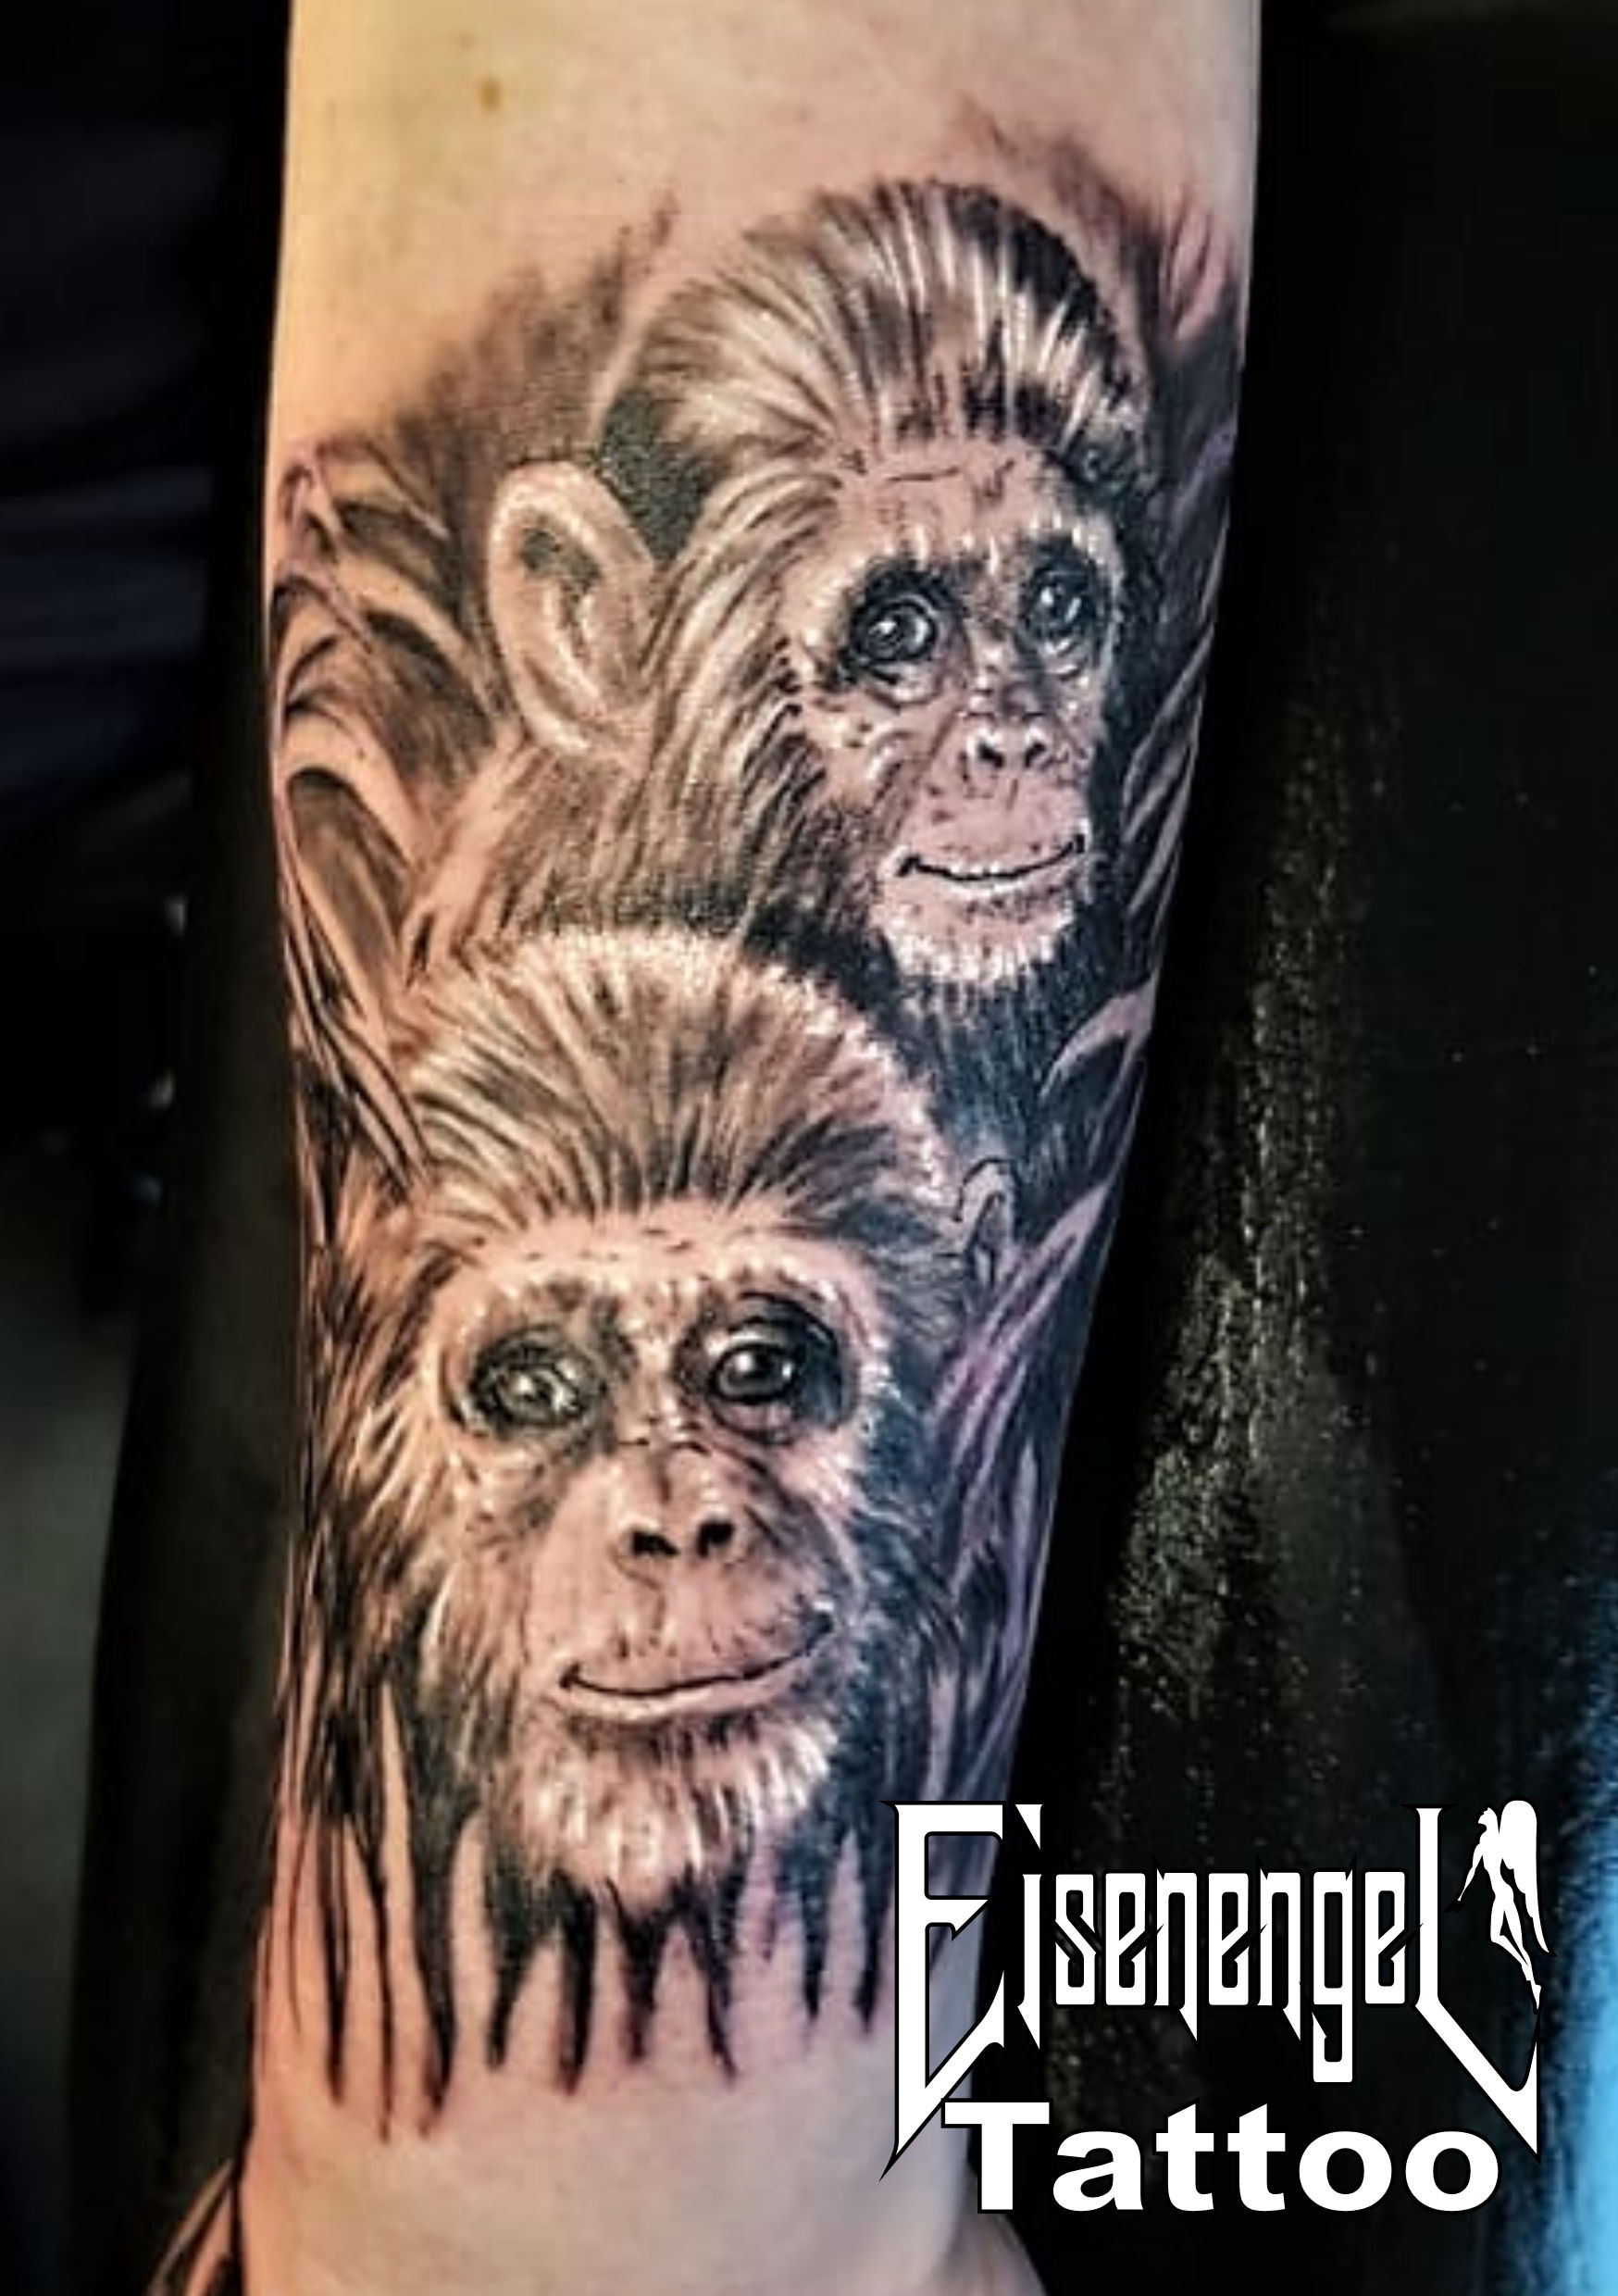 tattoo_affen_chimps.jpg